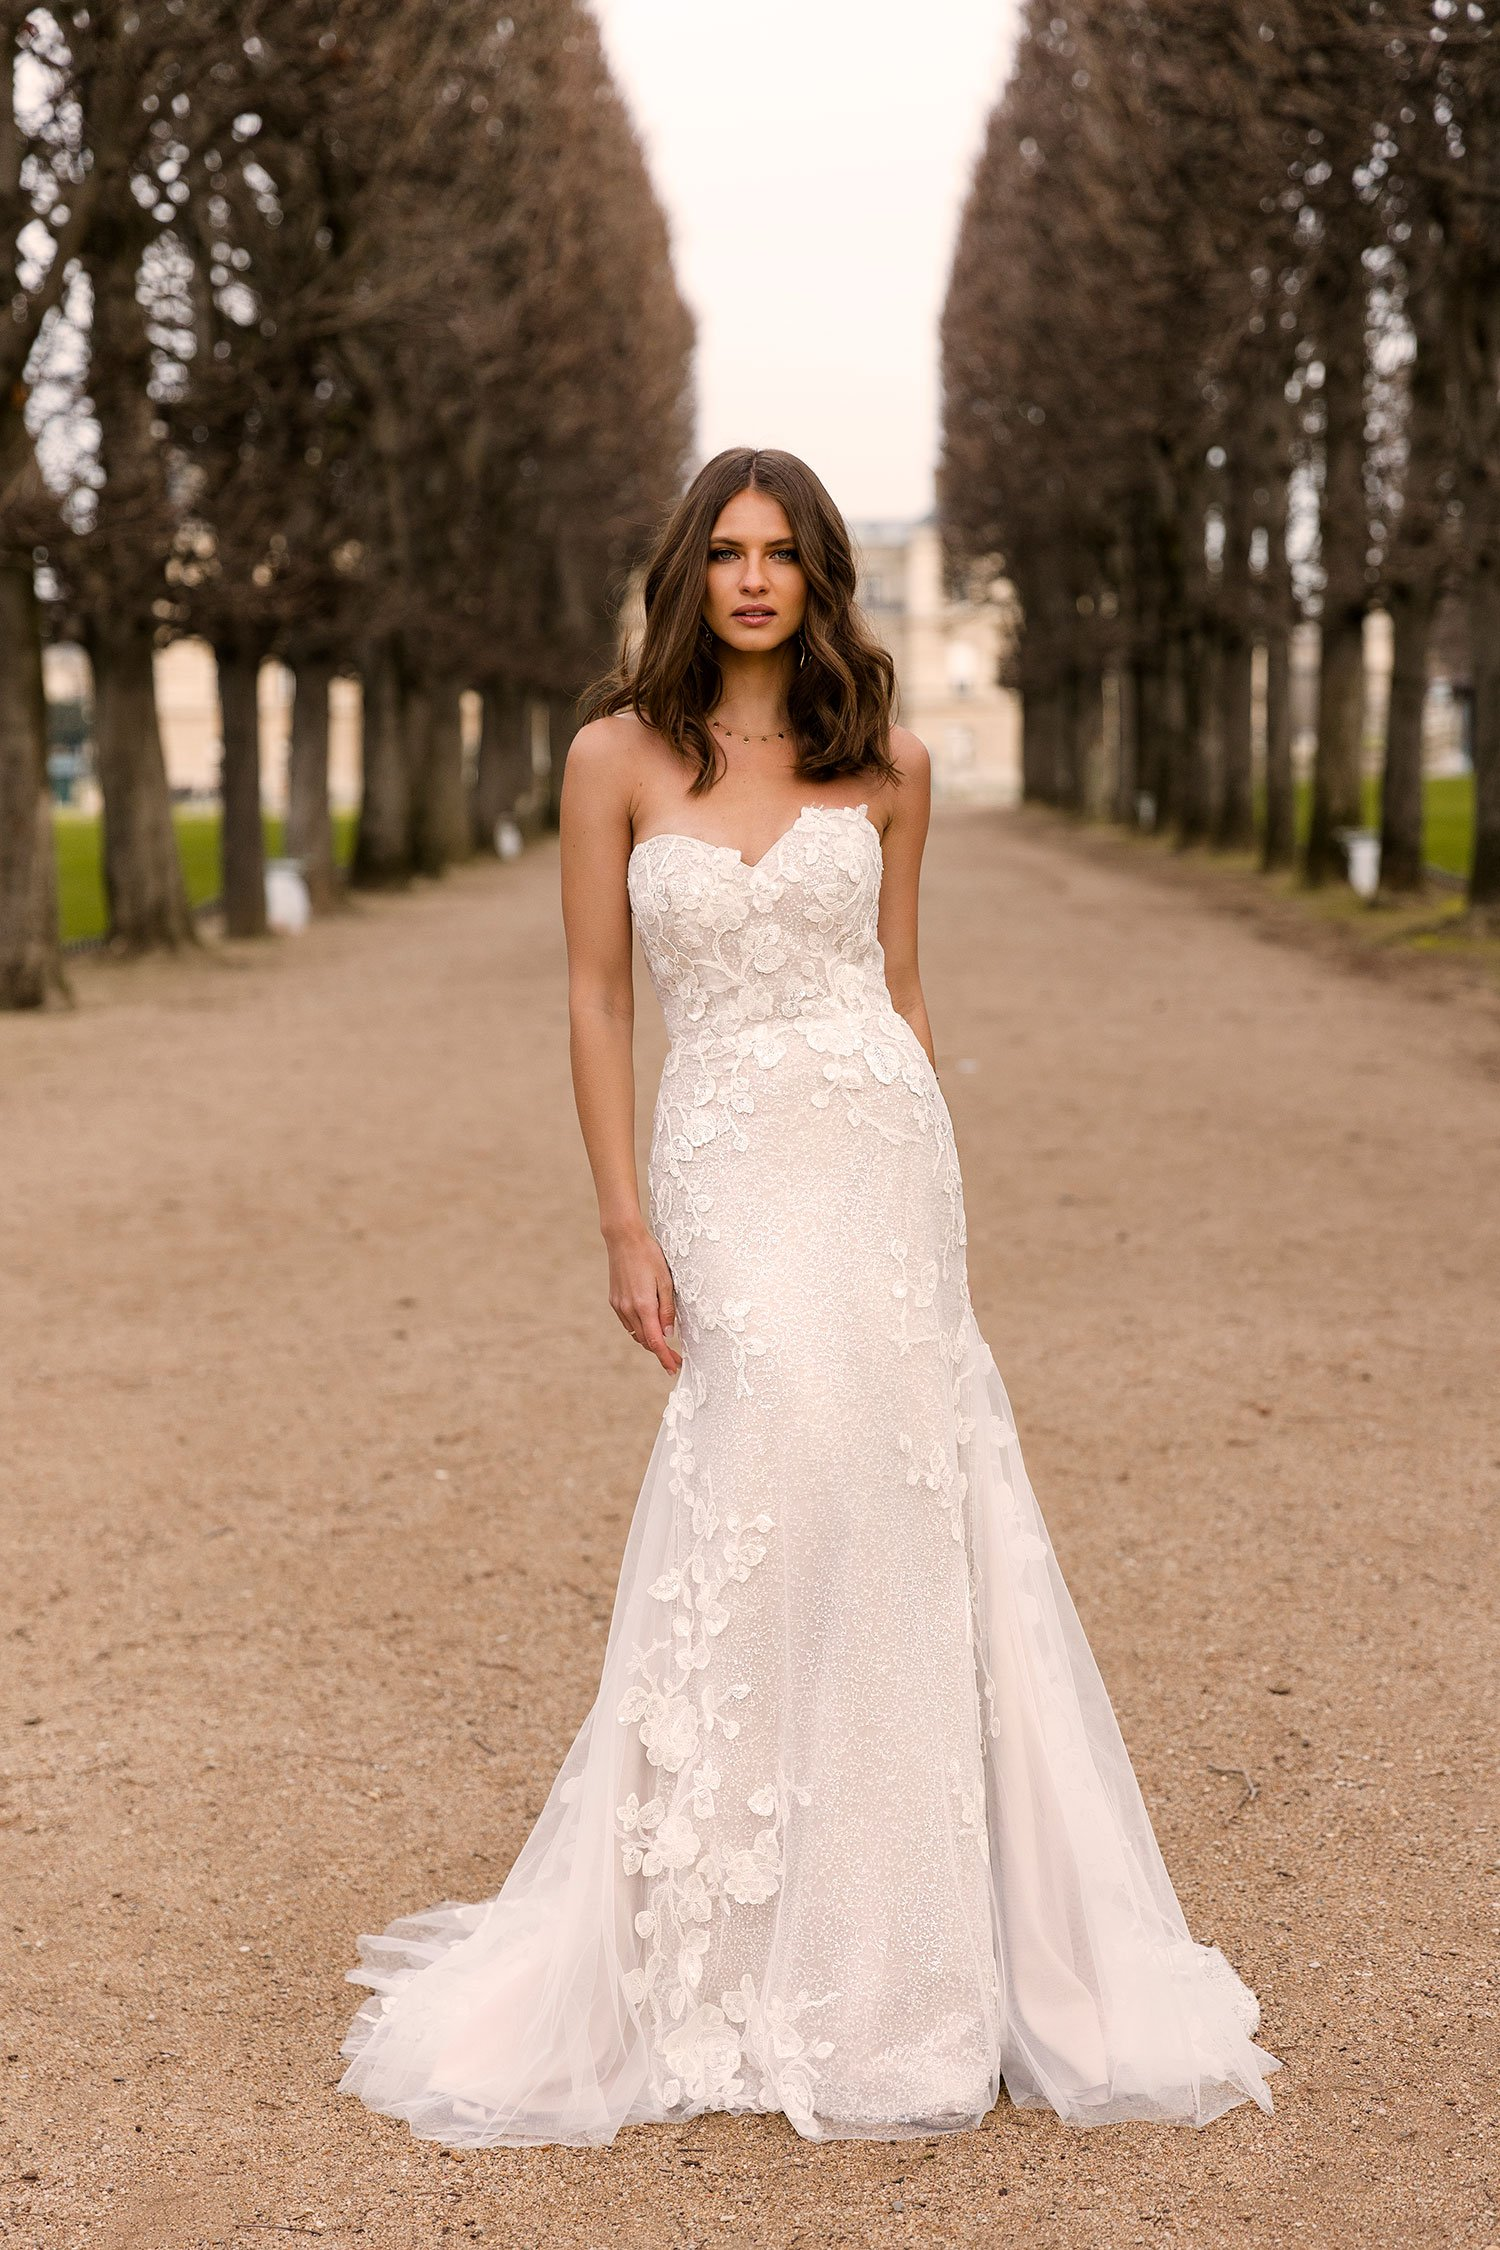 INDIGO-ML7319-FITTED-GOWN-WITH-LACE-LAYERED-OVER-TULLE-STRAPLESS-SWEETHEART-NECKLINE-AND-ZIP-UP-BACK-WEDDING-DRESS-MADI-LANE-BRIDAL4